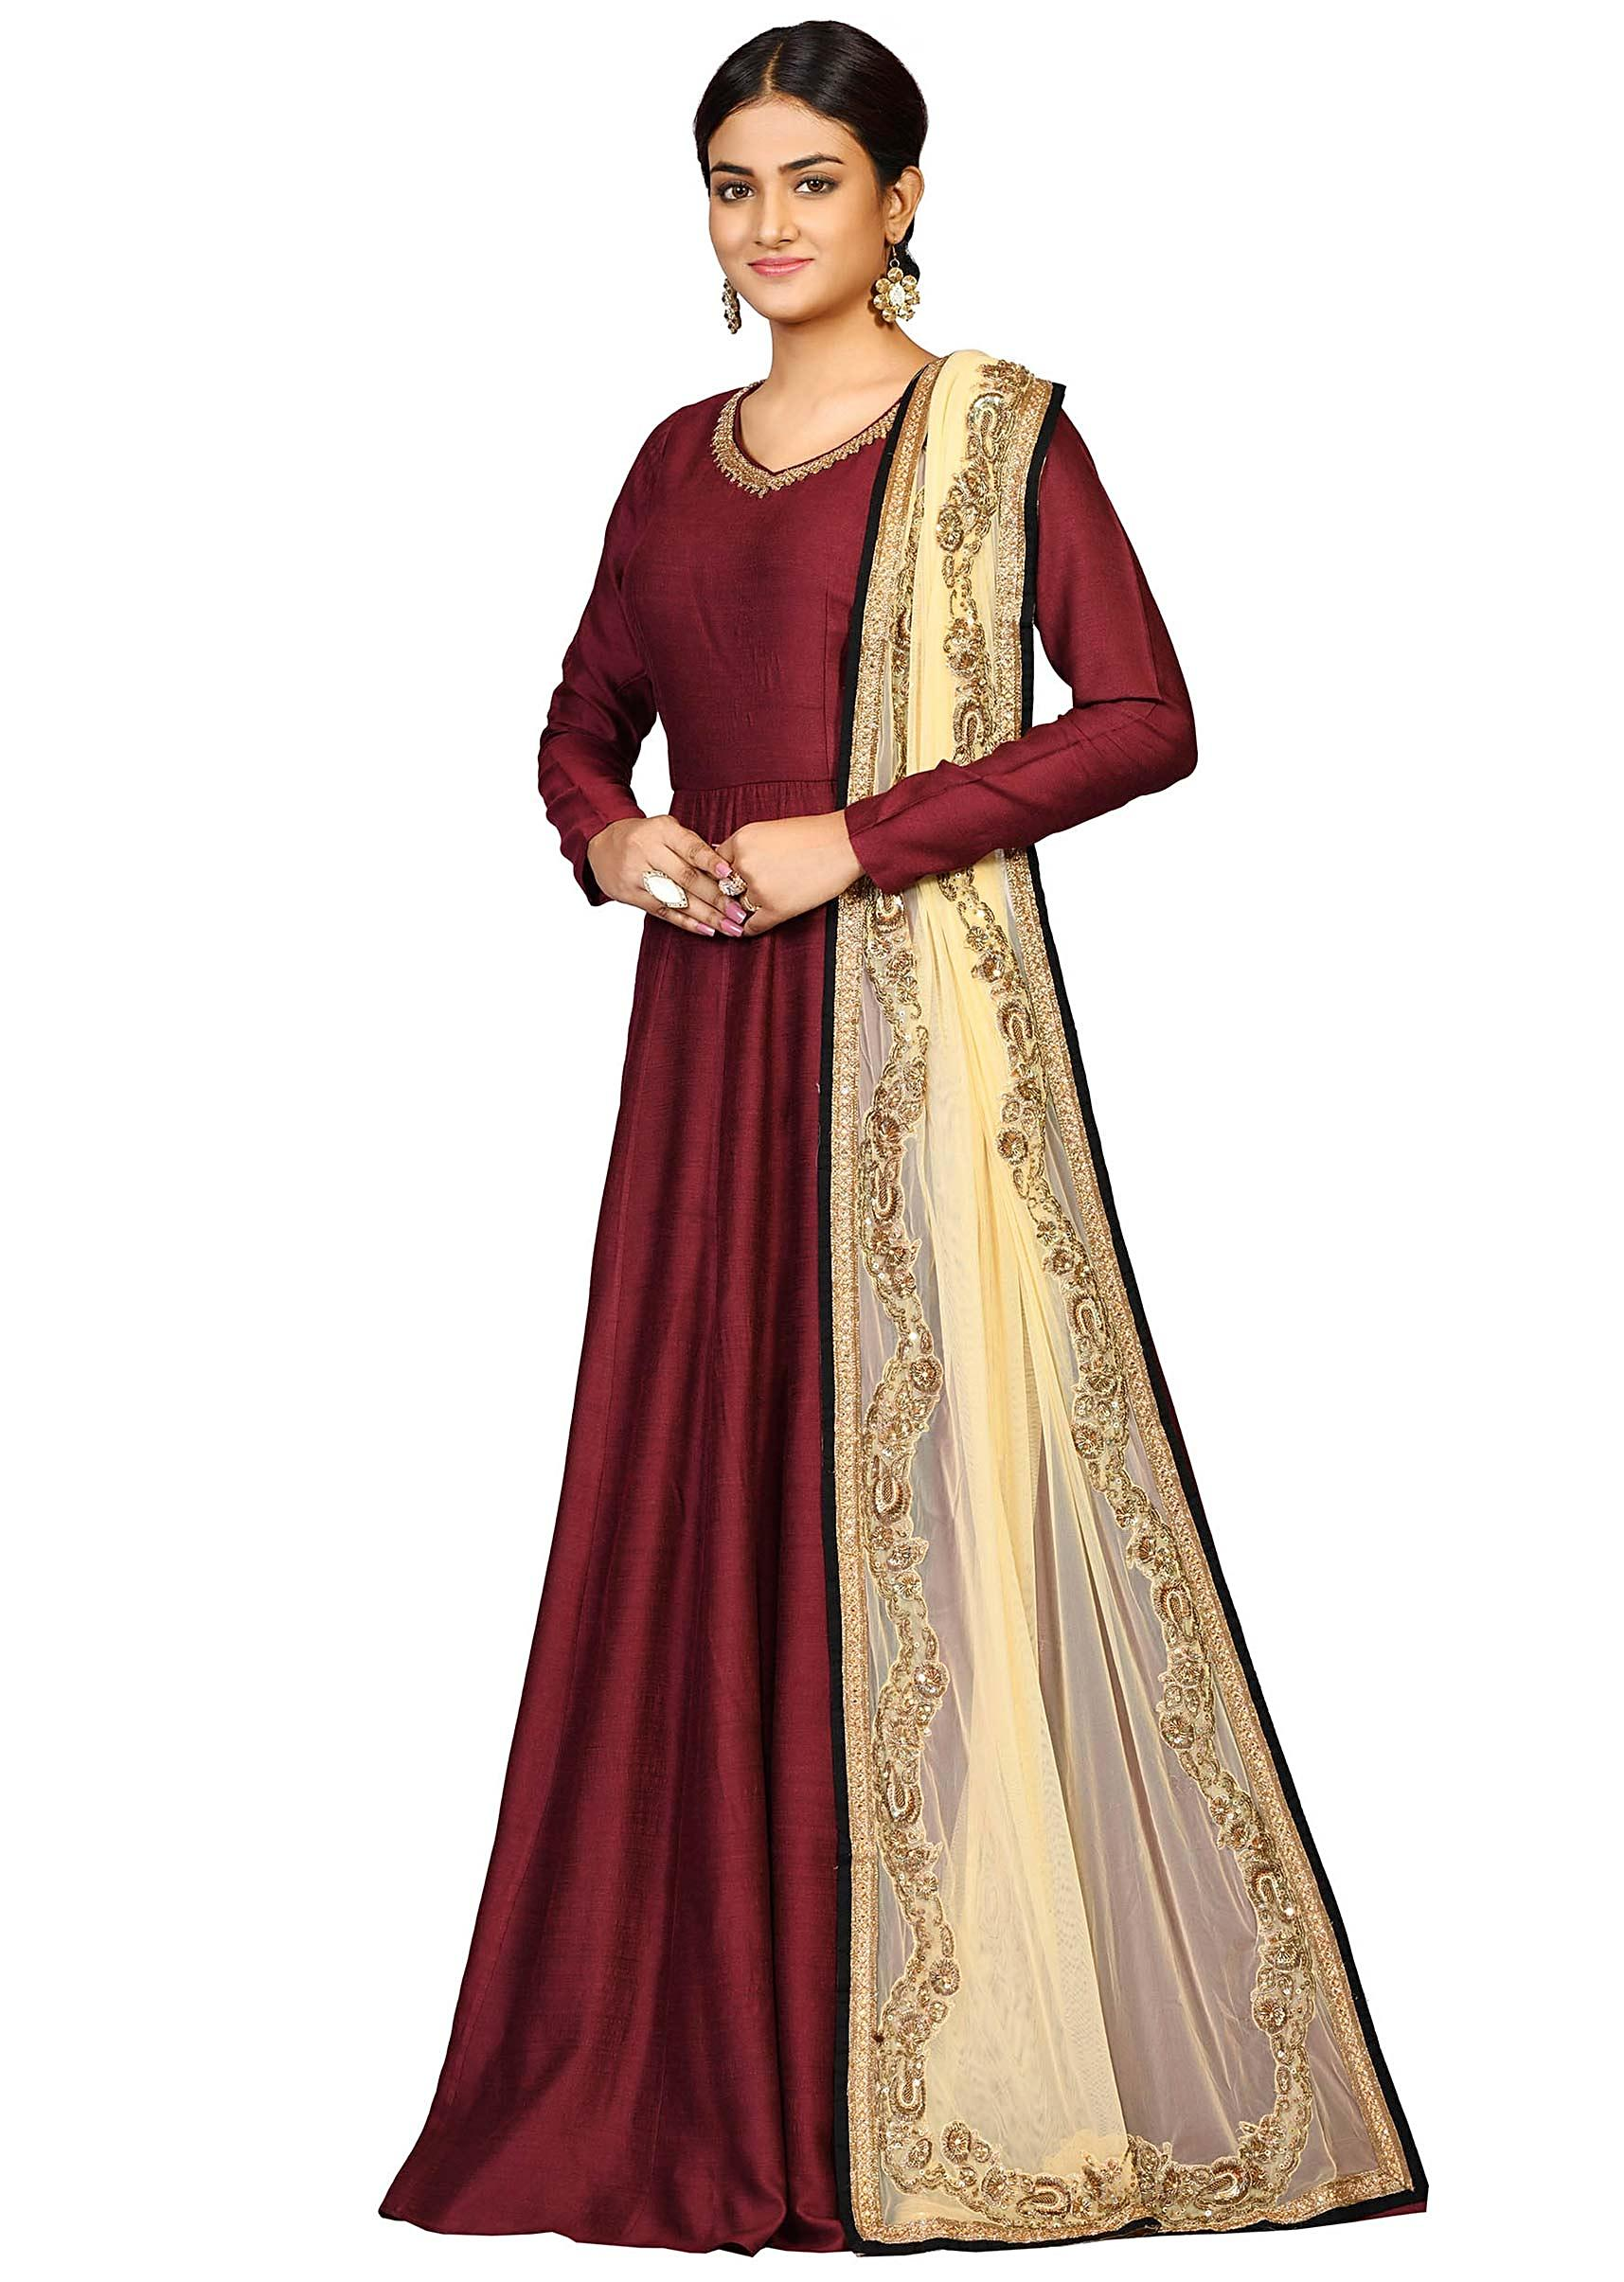 e2d91059b8 Brown chanderi suit with heavy dupatta featuring the zari embroidery only  on Kalki